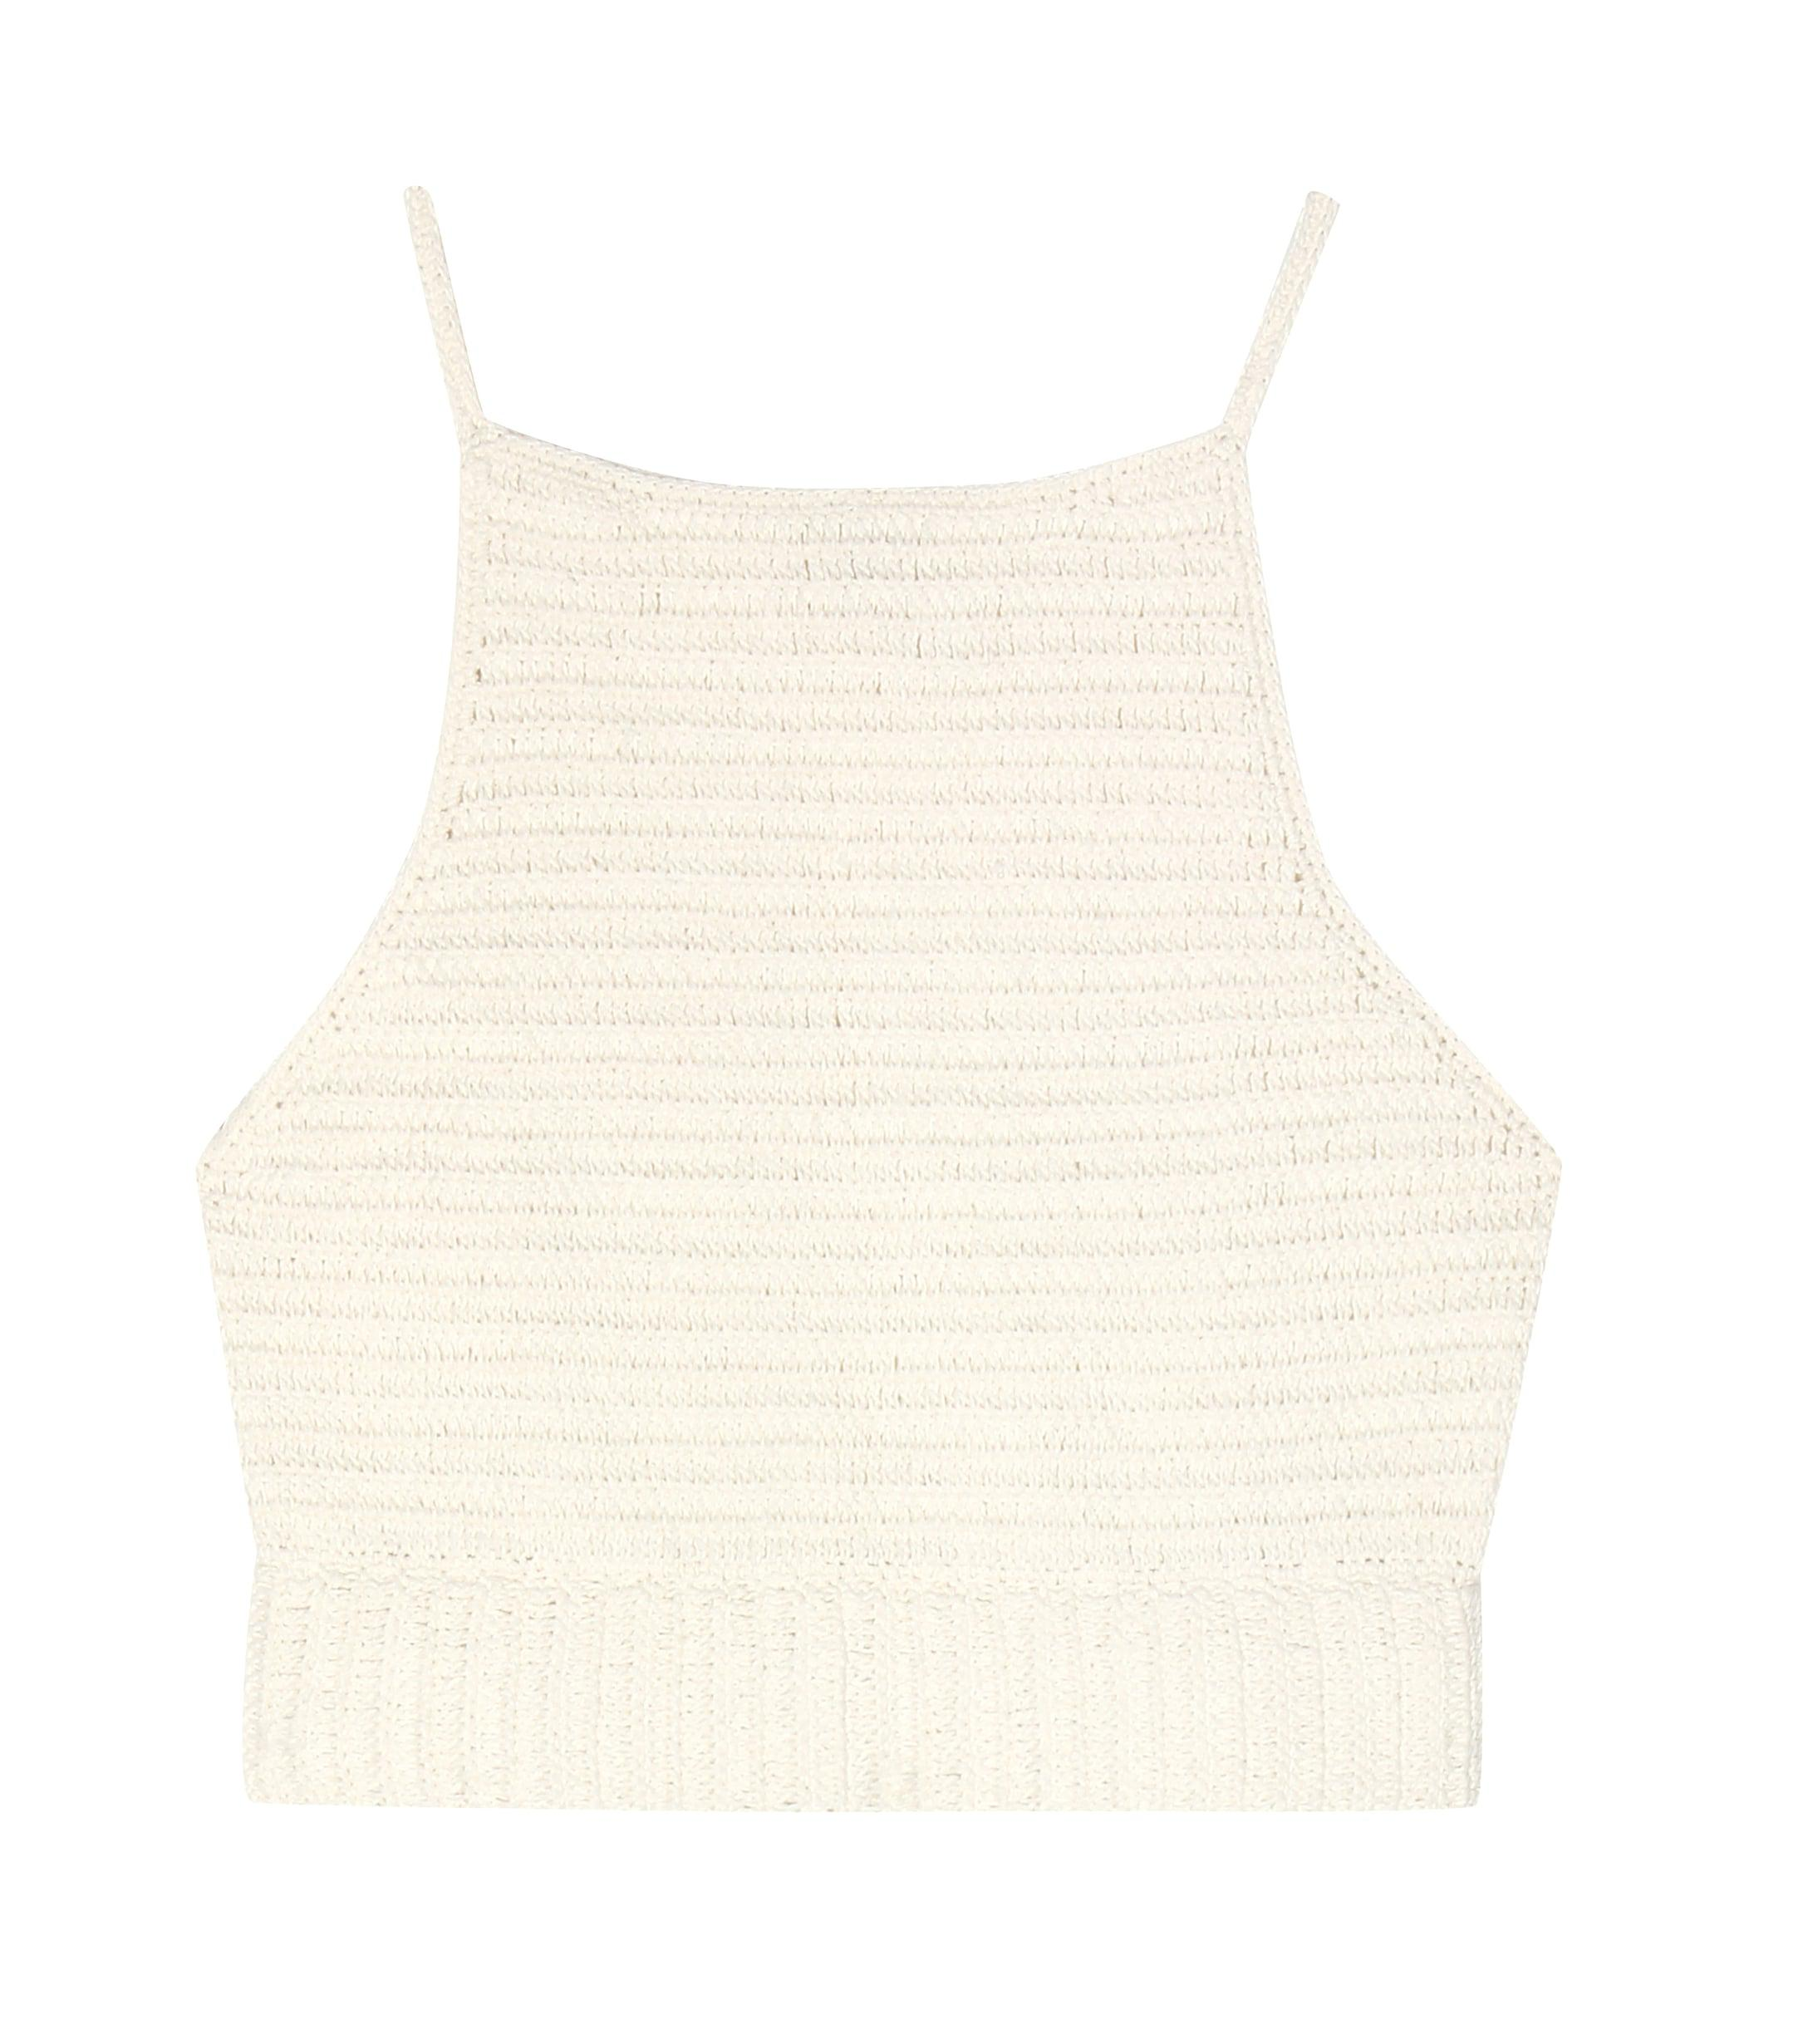 5ede4441467 She Made Me Crochet Knit Cotton Top in Natural - Lyst